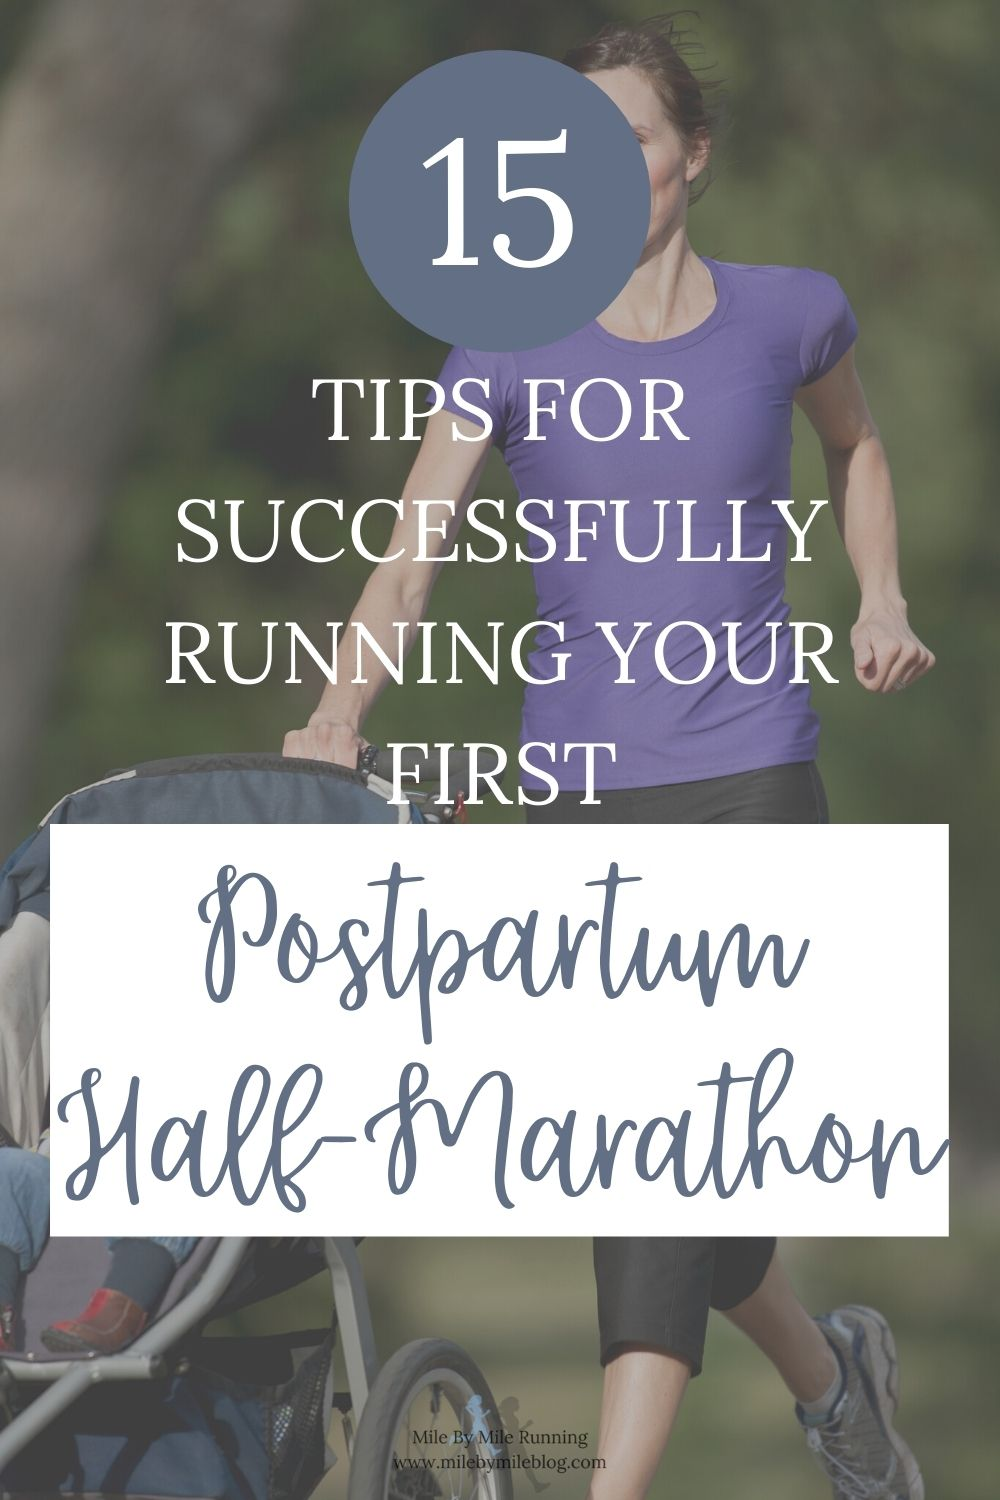 Navigating the world of postpartum running can be tricky, but also exciting to reach new milestones. One of those milestones may be returning to racing. For many postpartum runners a goal during their first year after giving birth may be to run a half-marathon. What do you need to know in order to successfully train for and run your first postpartum half-marathon?